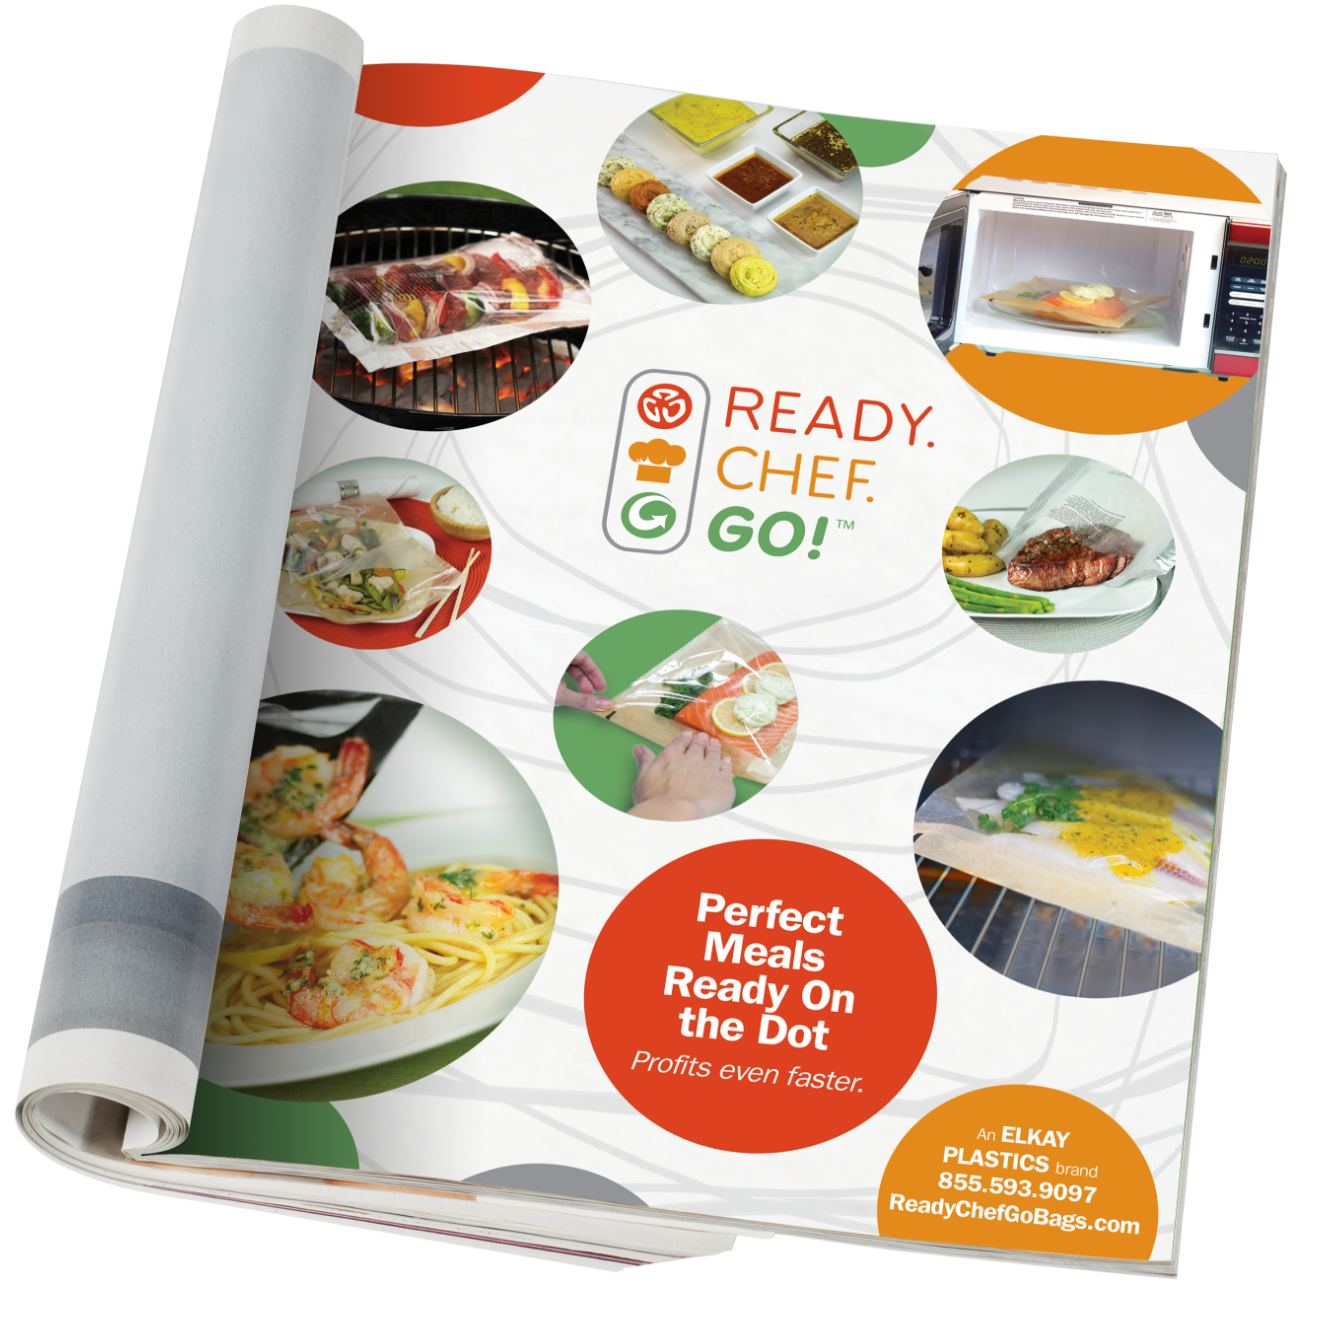 Ready. Chef. Go! magazine ad featuring meals.